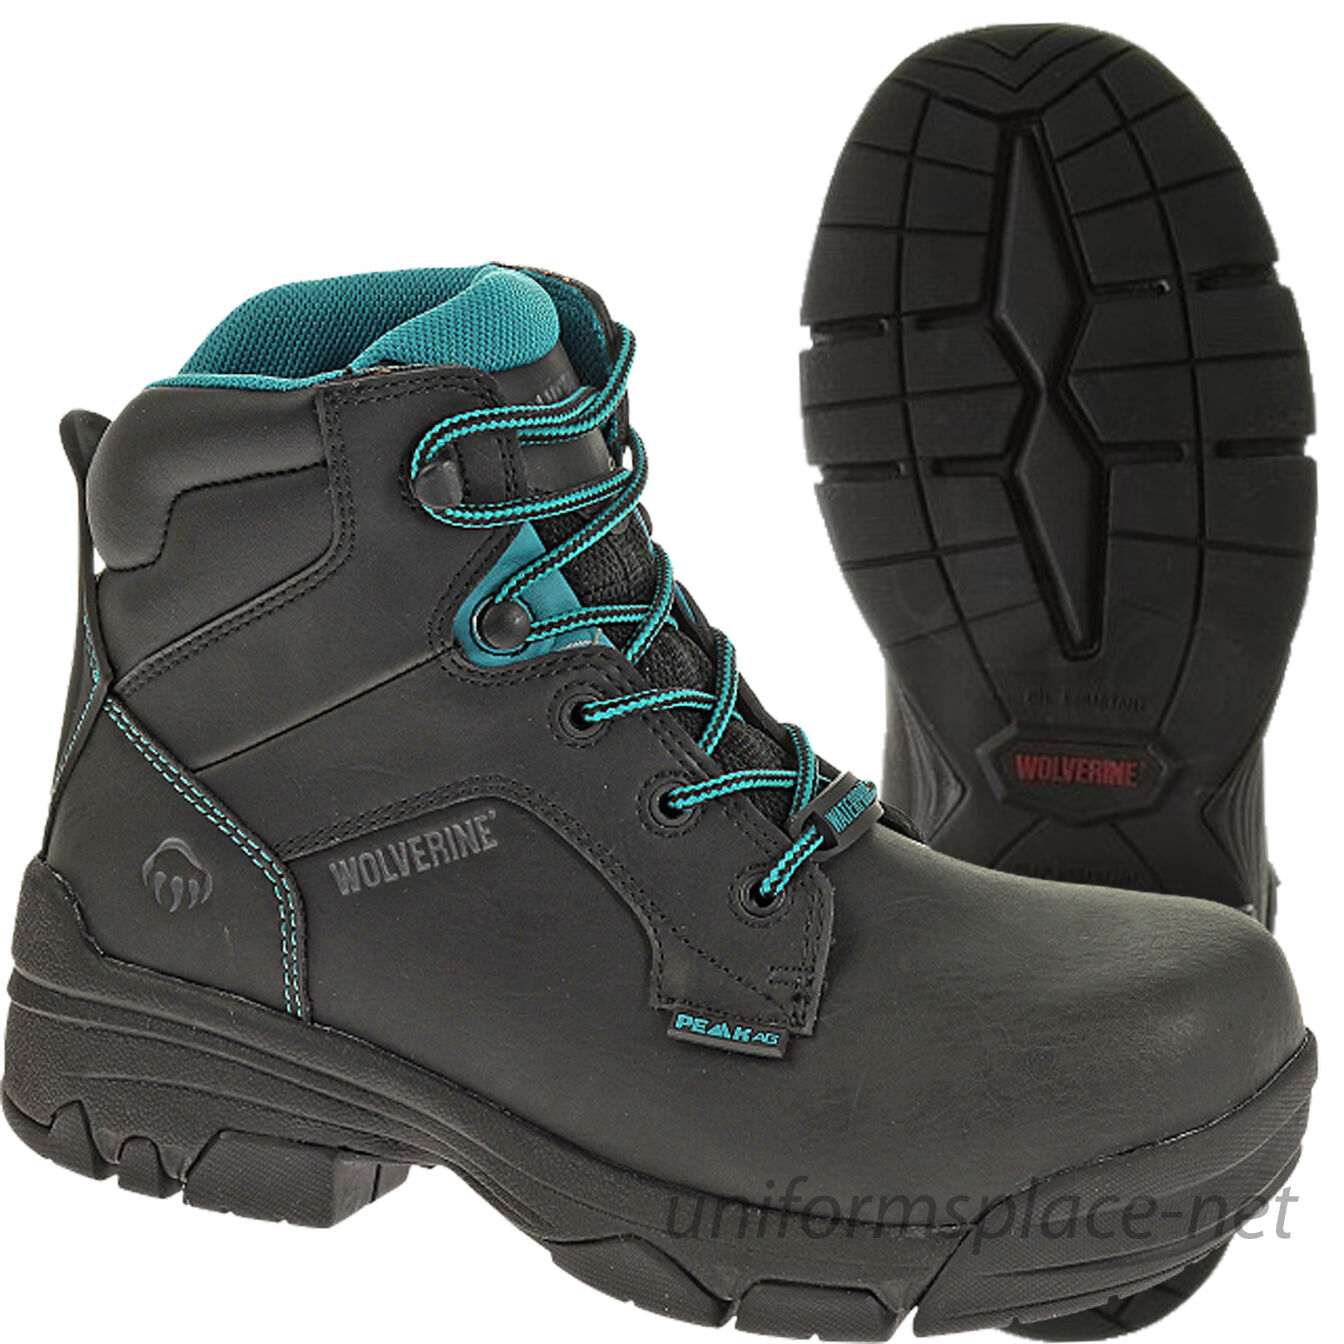 Wolverine Wolverine Wolverine Boots Womens Merlin Waterproof Composite Safety Toe Leather Work Boot 371d19